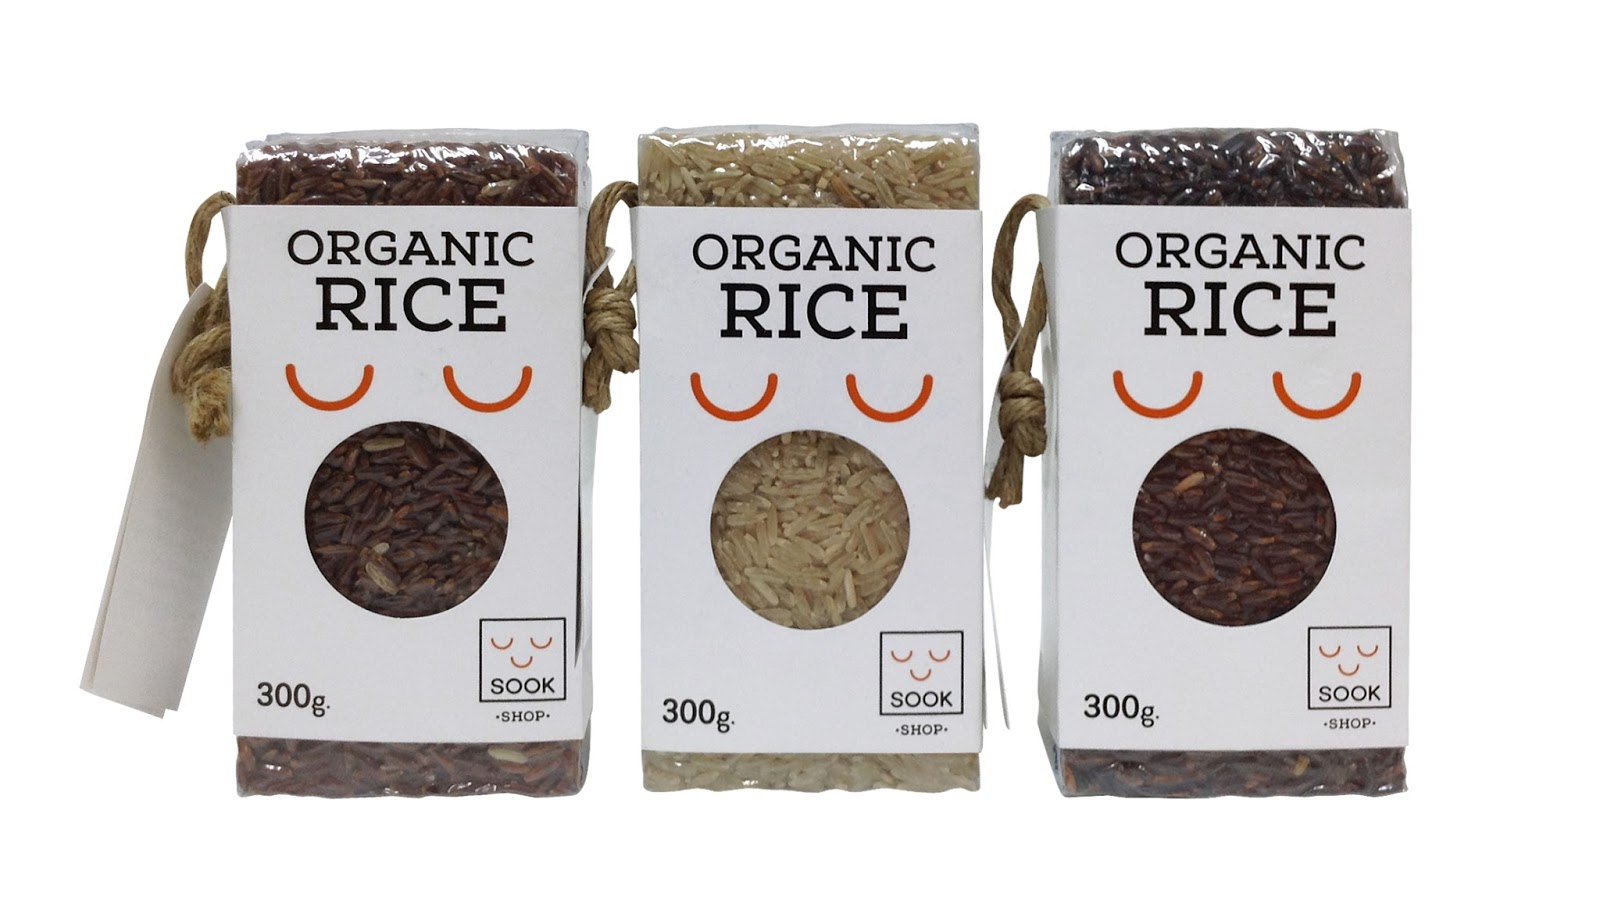 Sook Rice On Packaging Of The World Creative Package Design Gallery